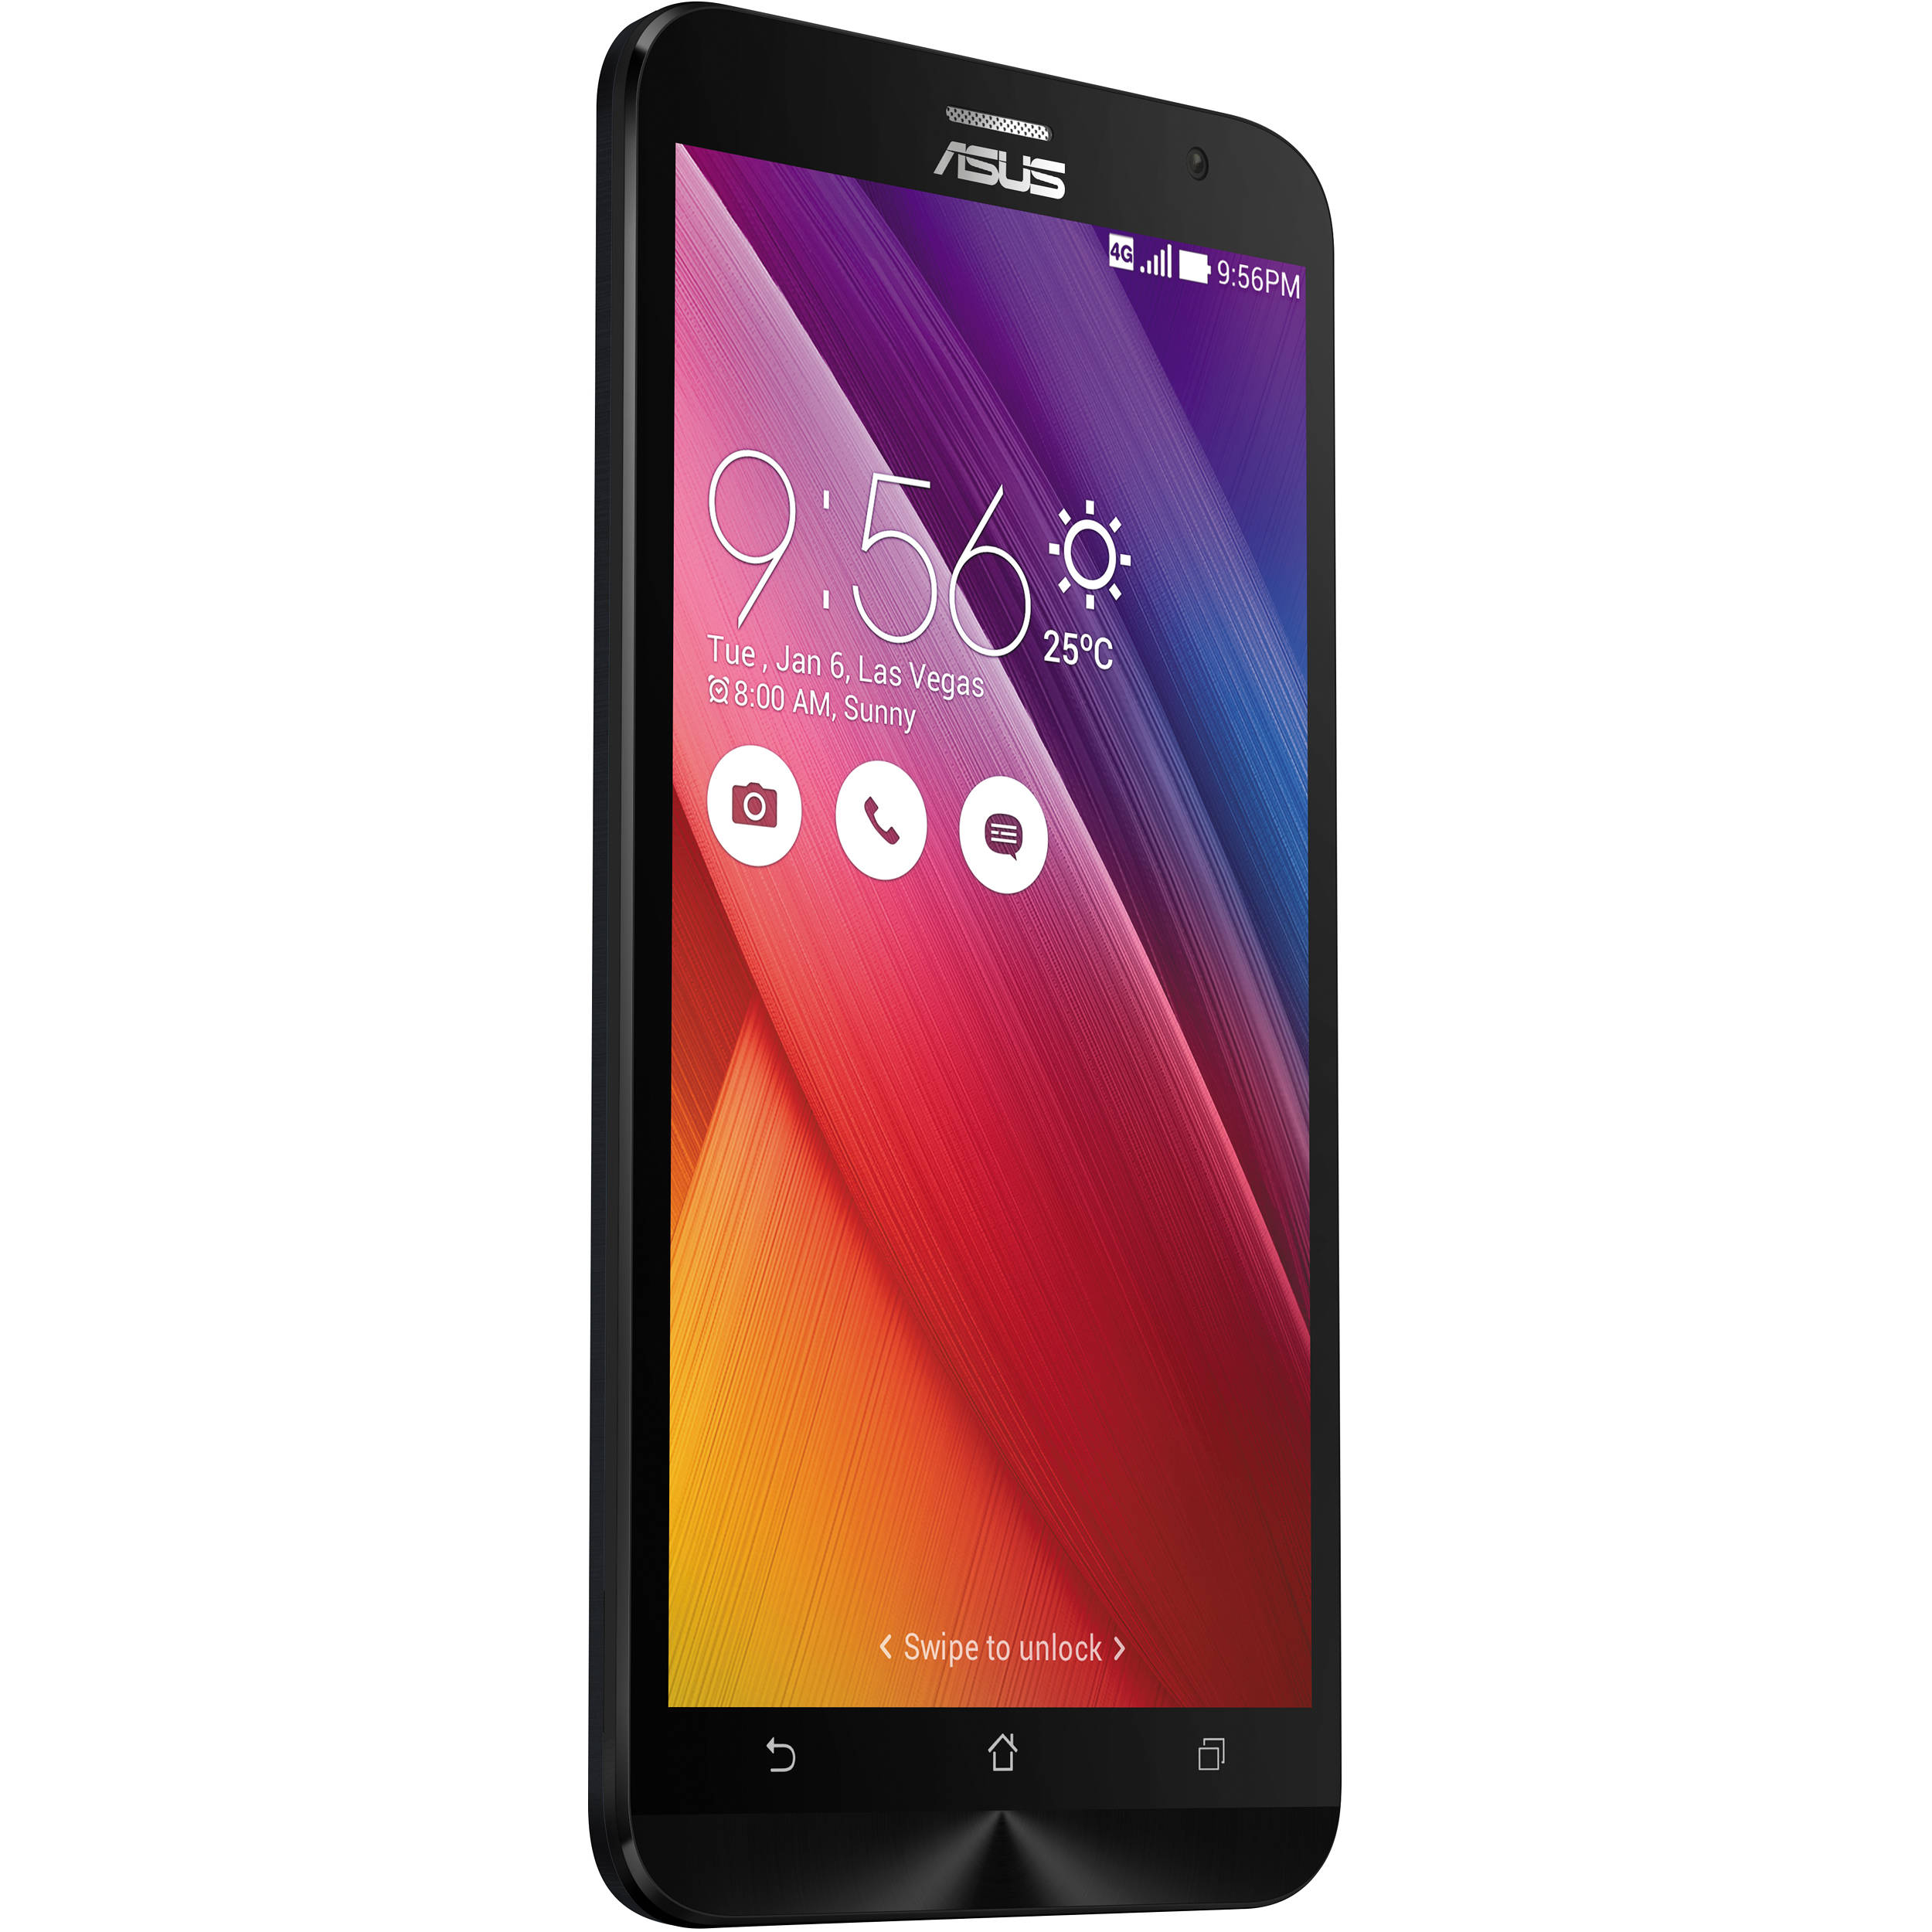 asus zenfone 2 ze551ml 64gb smartphone ze551ml 23 4g64gn bk b h. Black Bedroom Furniture Sets. Home Design Ideas